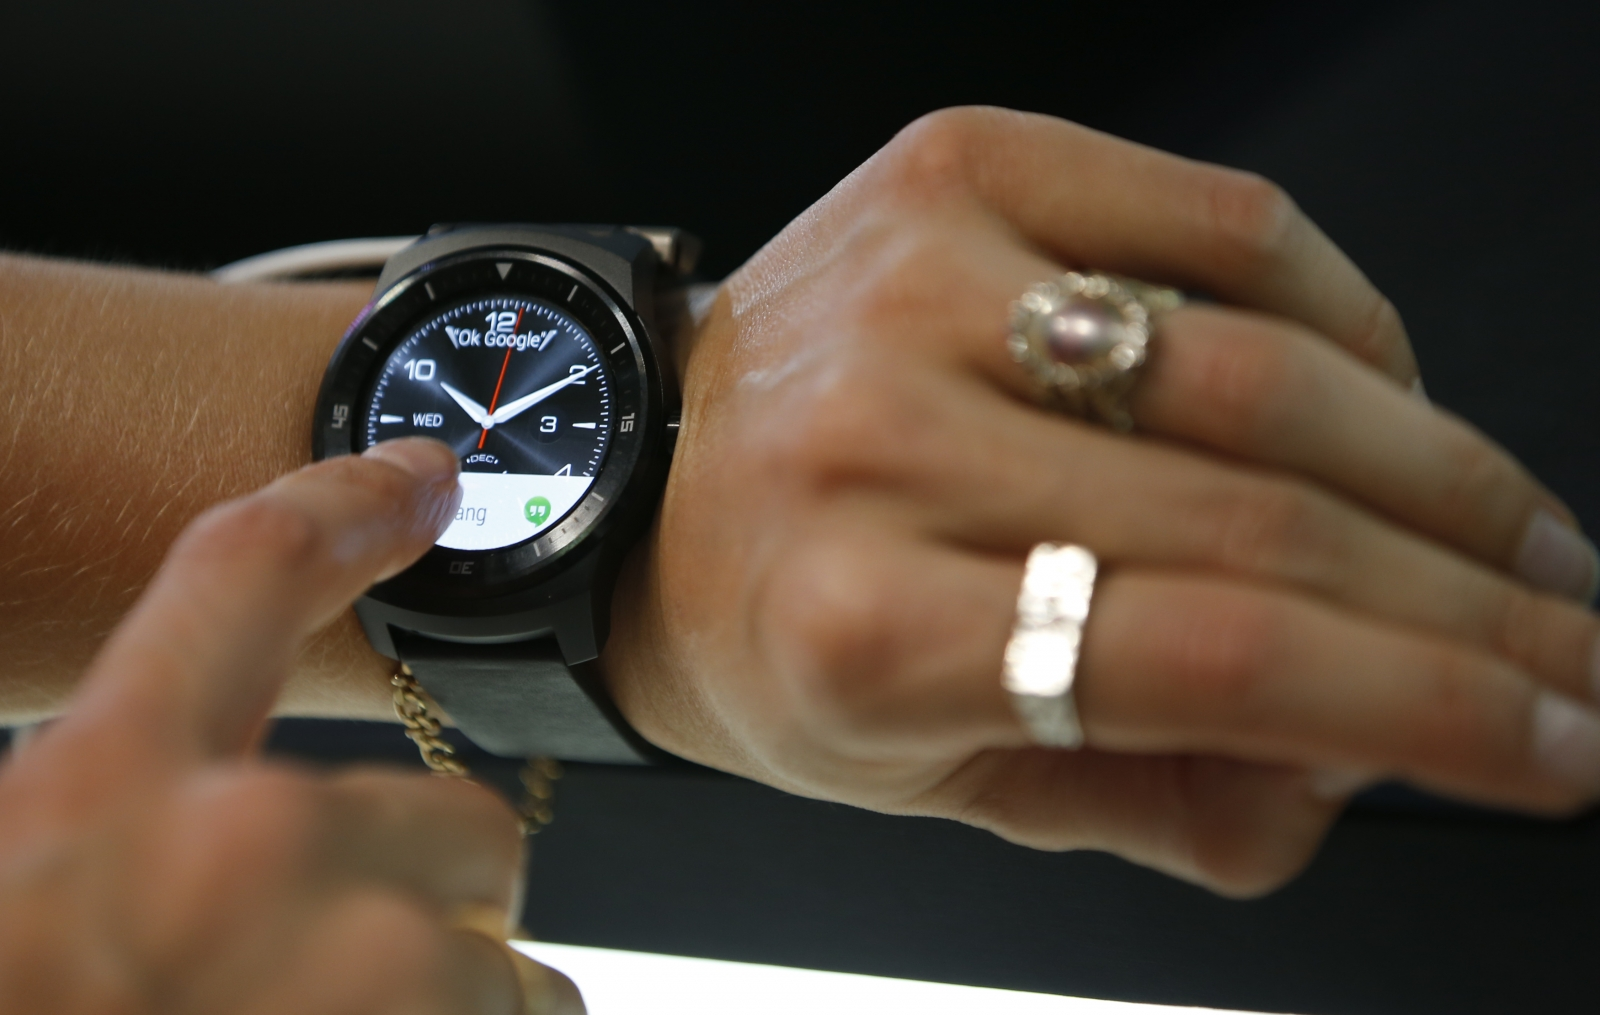 After Rolling to older Nexus Devices, Google Android Lollipop Expected to Reach Android Wear Users Shortly